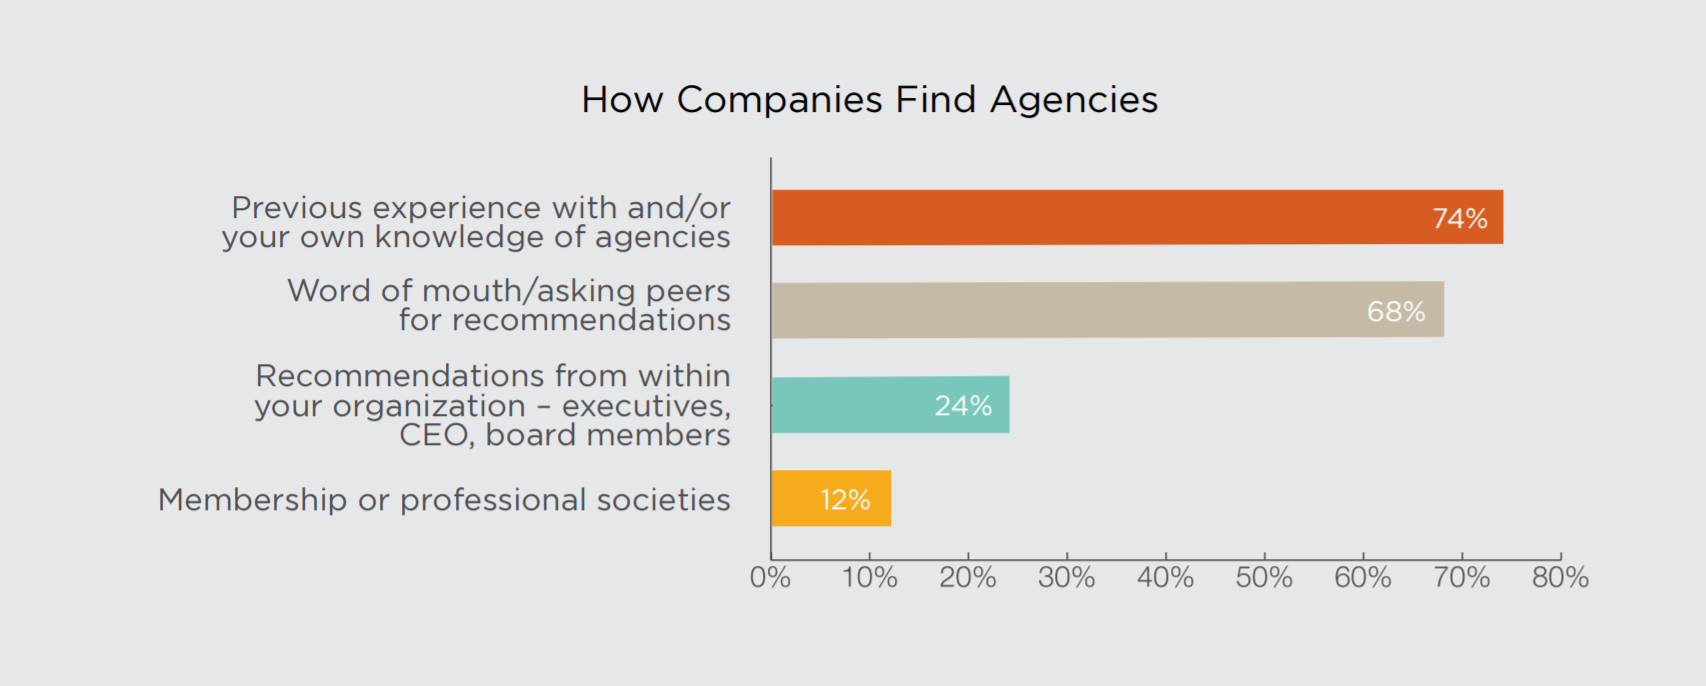 How Companies Find Agencies